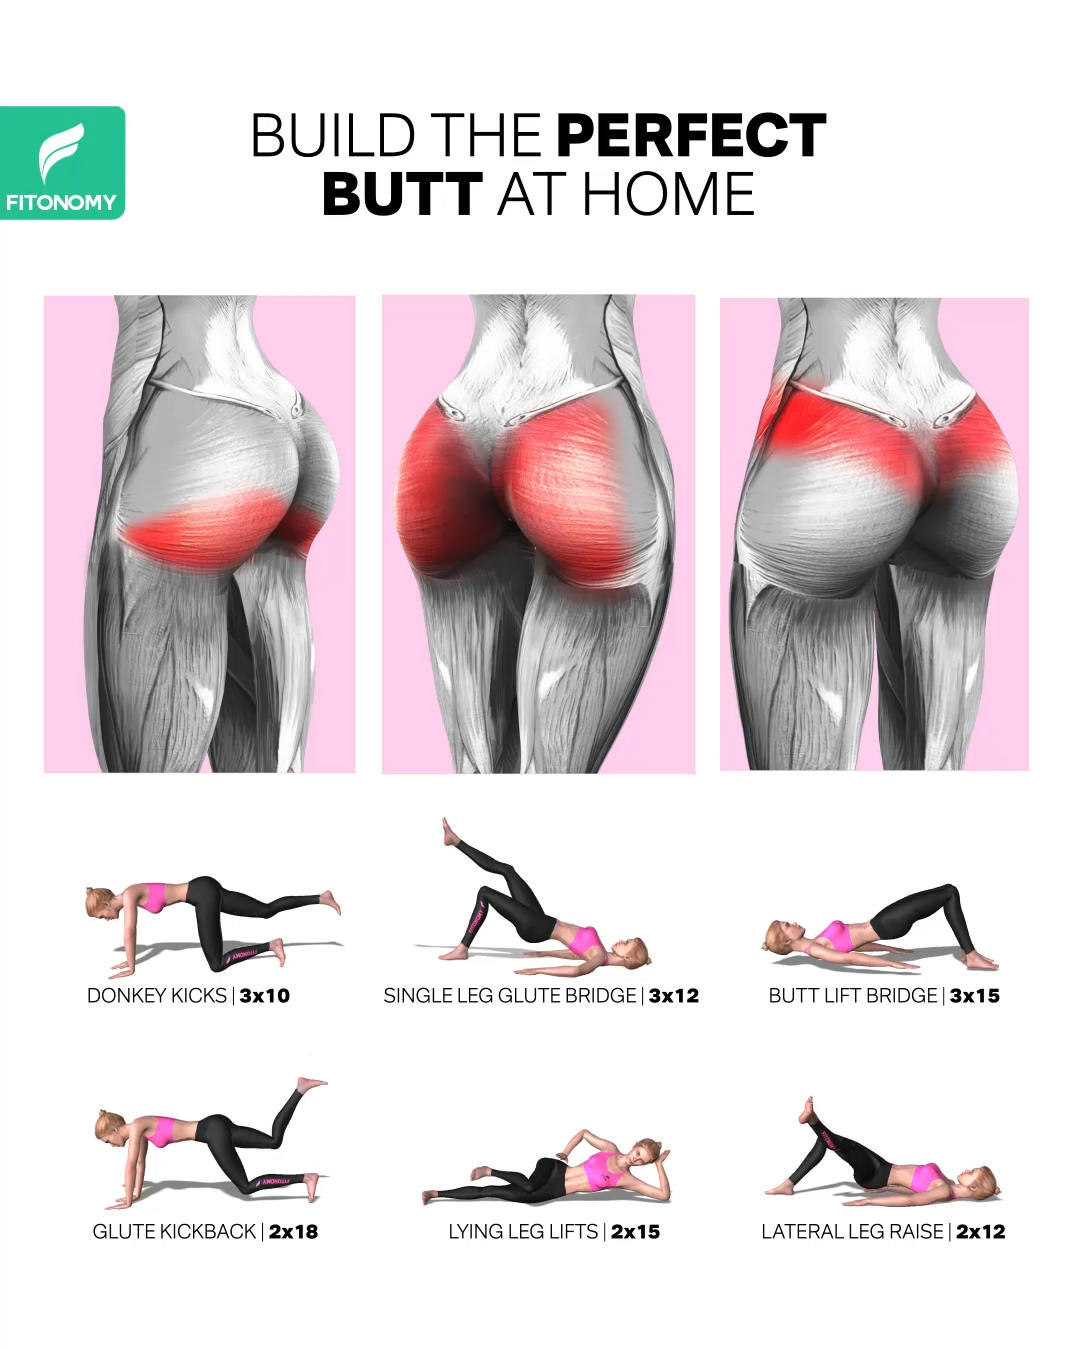 BUILD THE PERFECT BUTT AT HOME